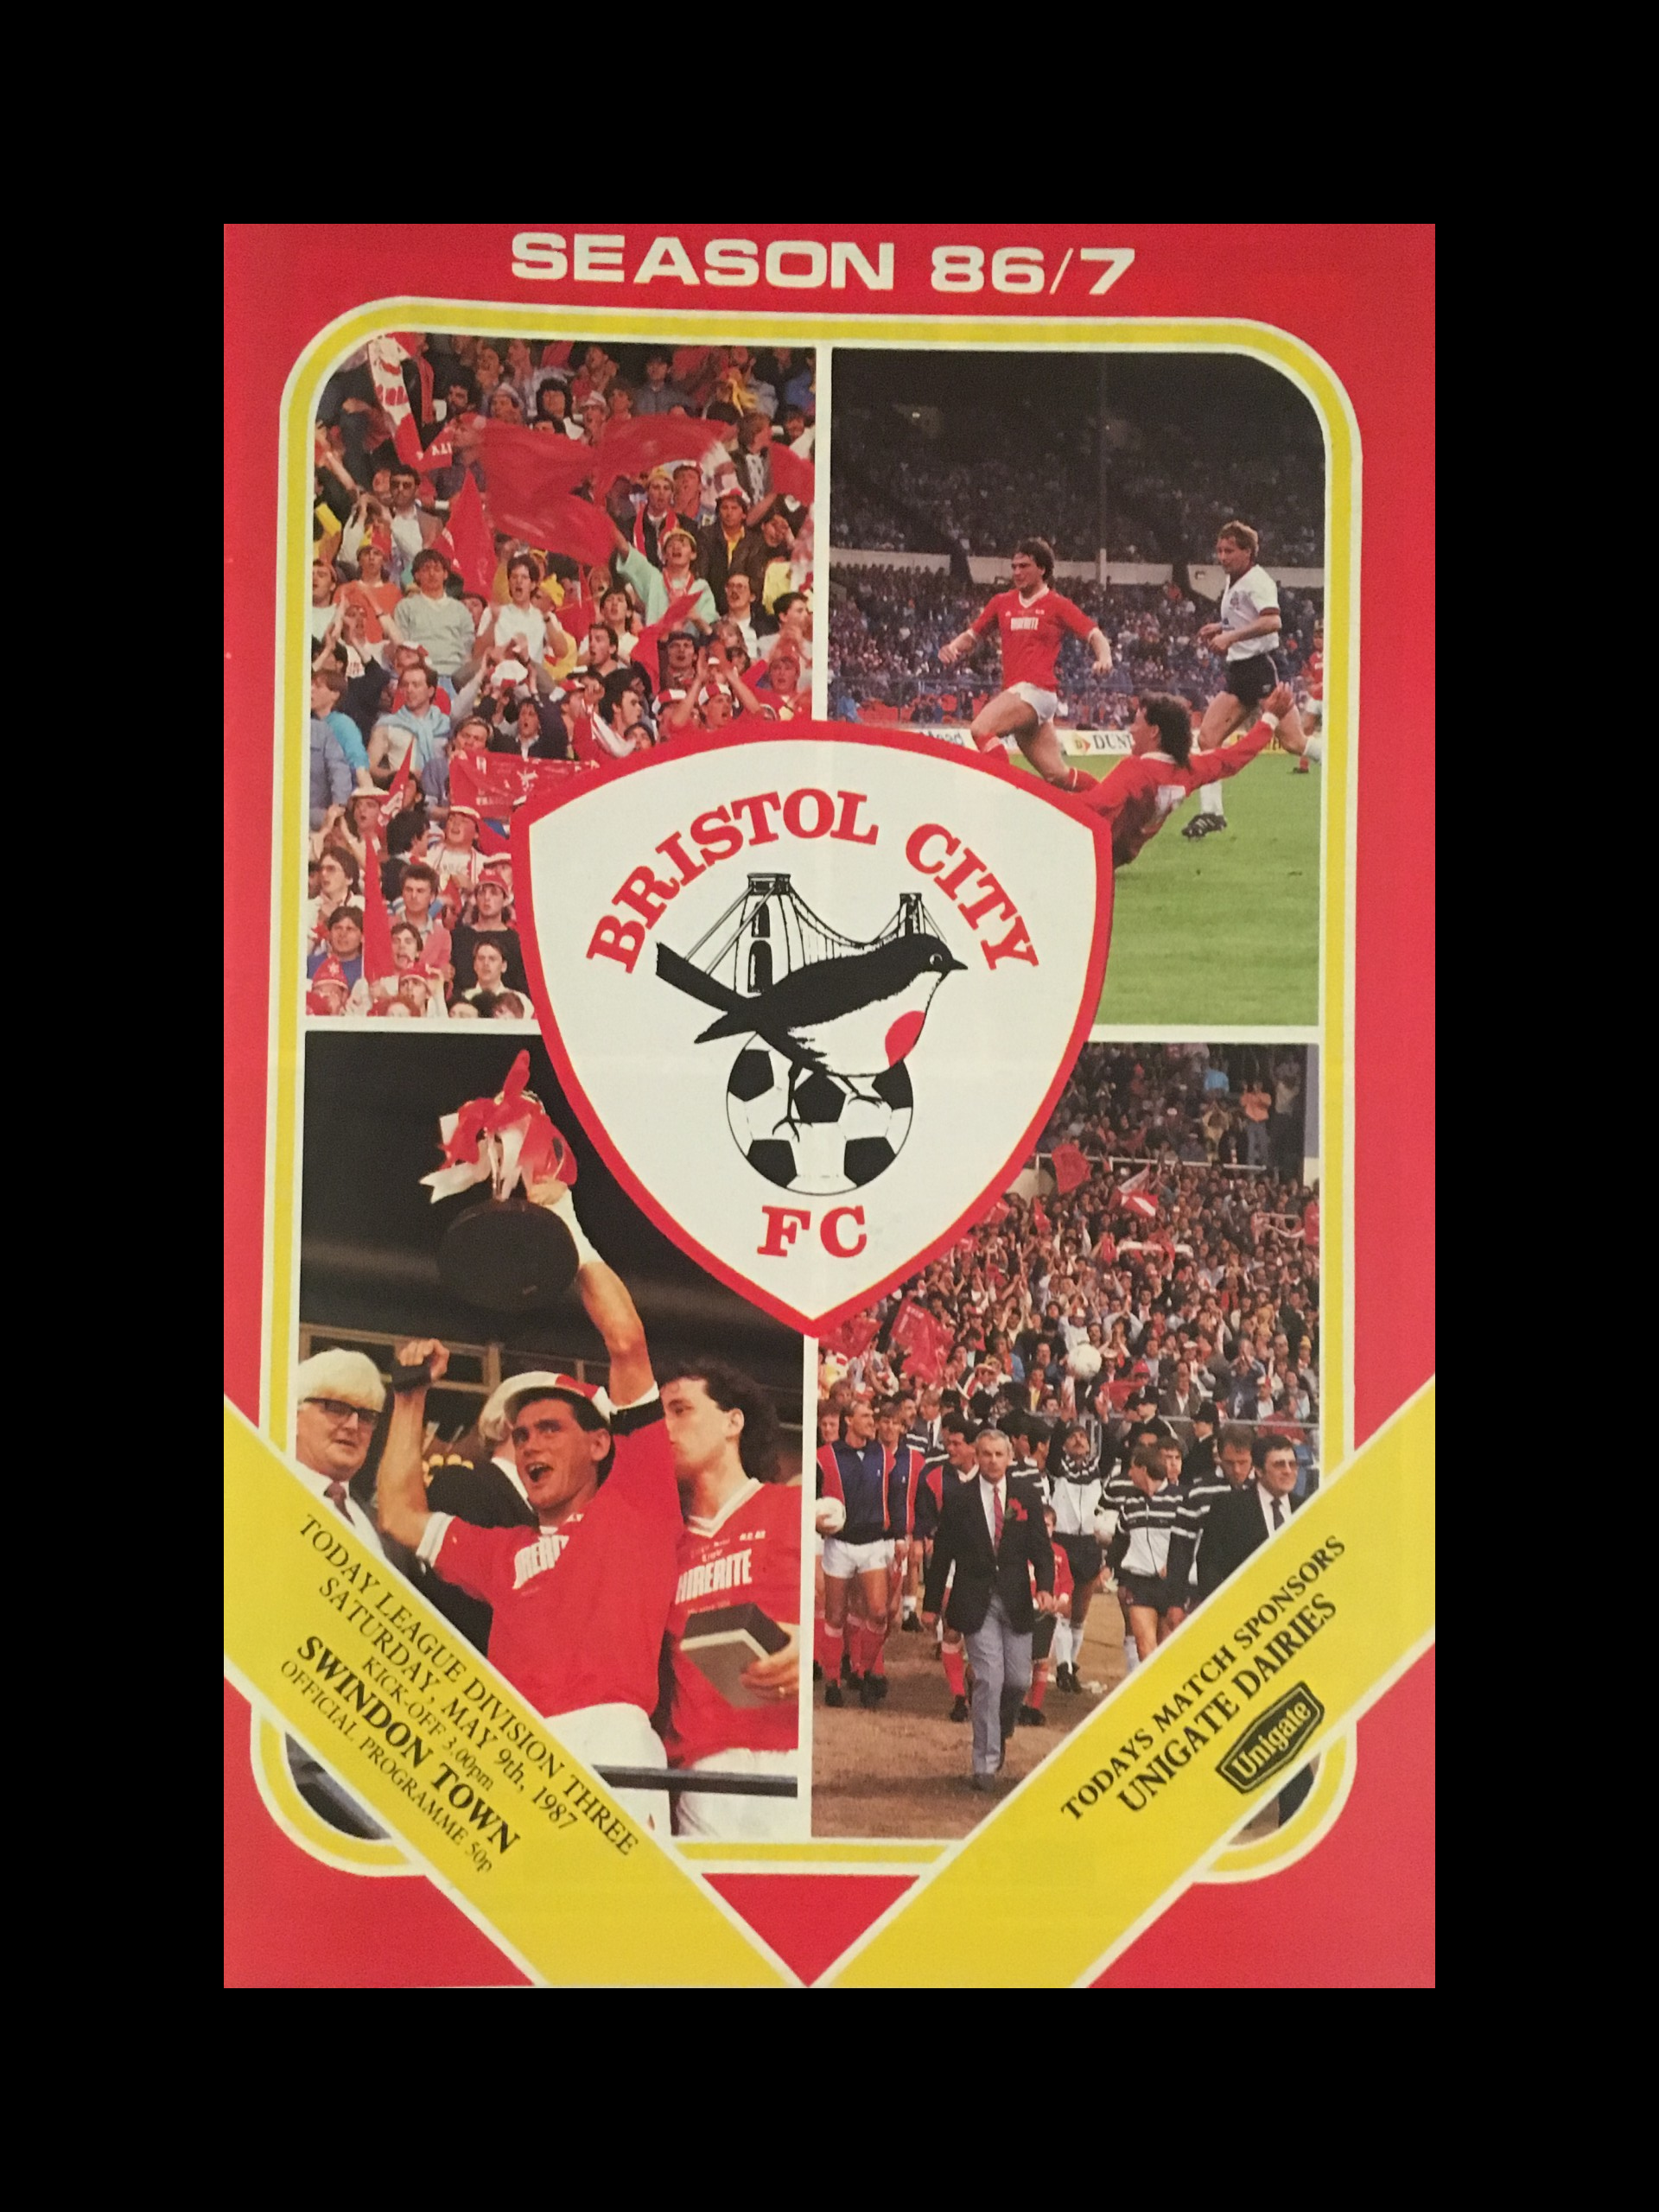 Bristol City v Swindon Town 09-05-87 Programme